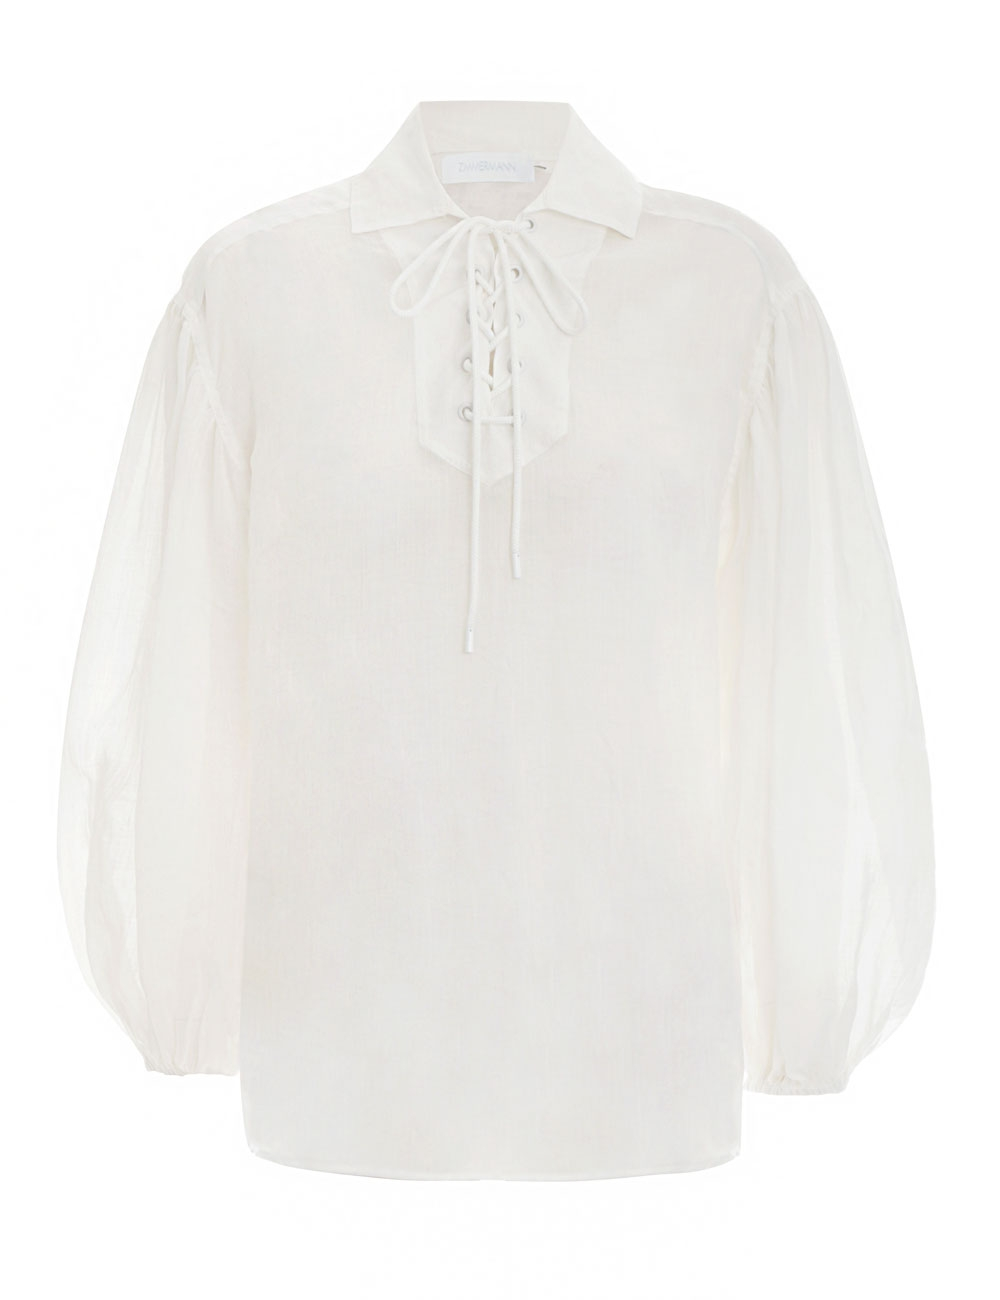 Bonita Lace Up Shirt